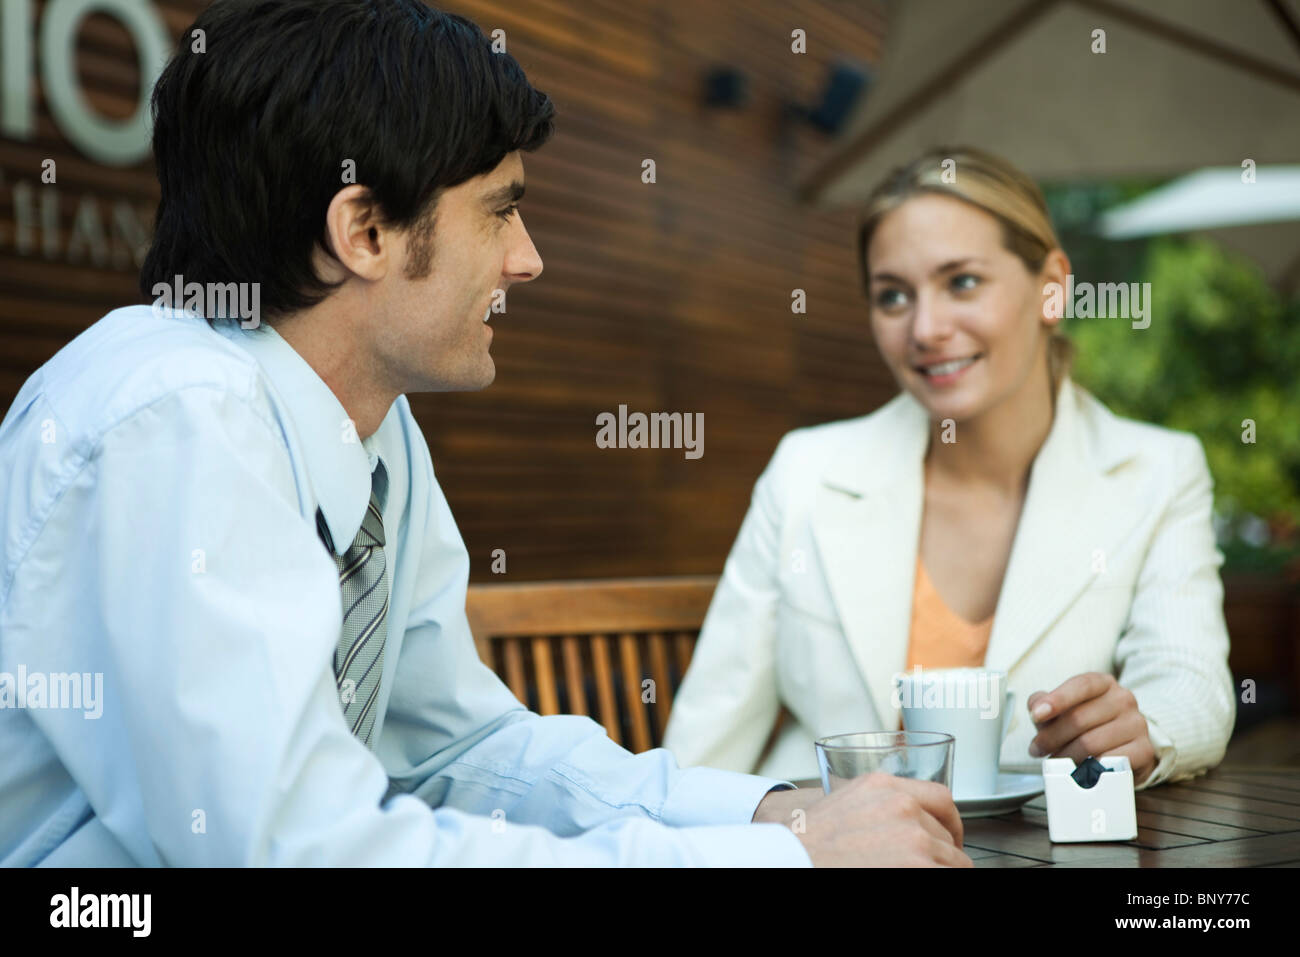 Couple relaxing together in outdoor cafe - Stock Image